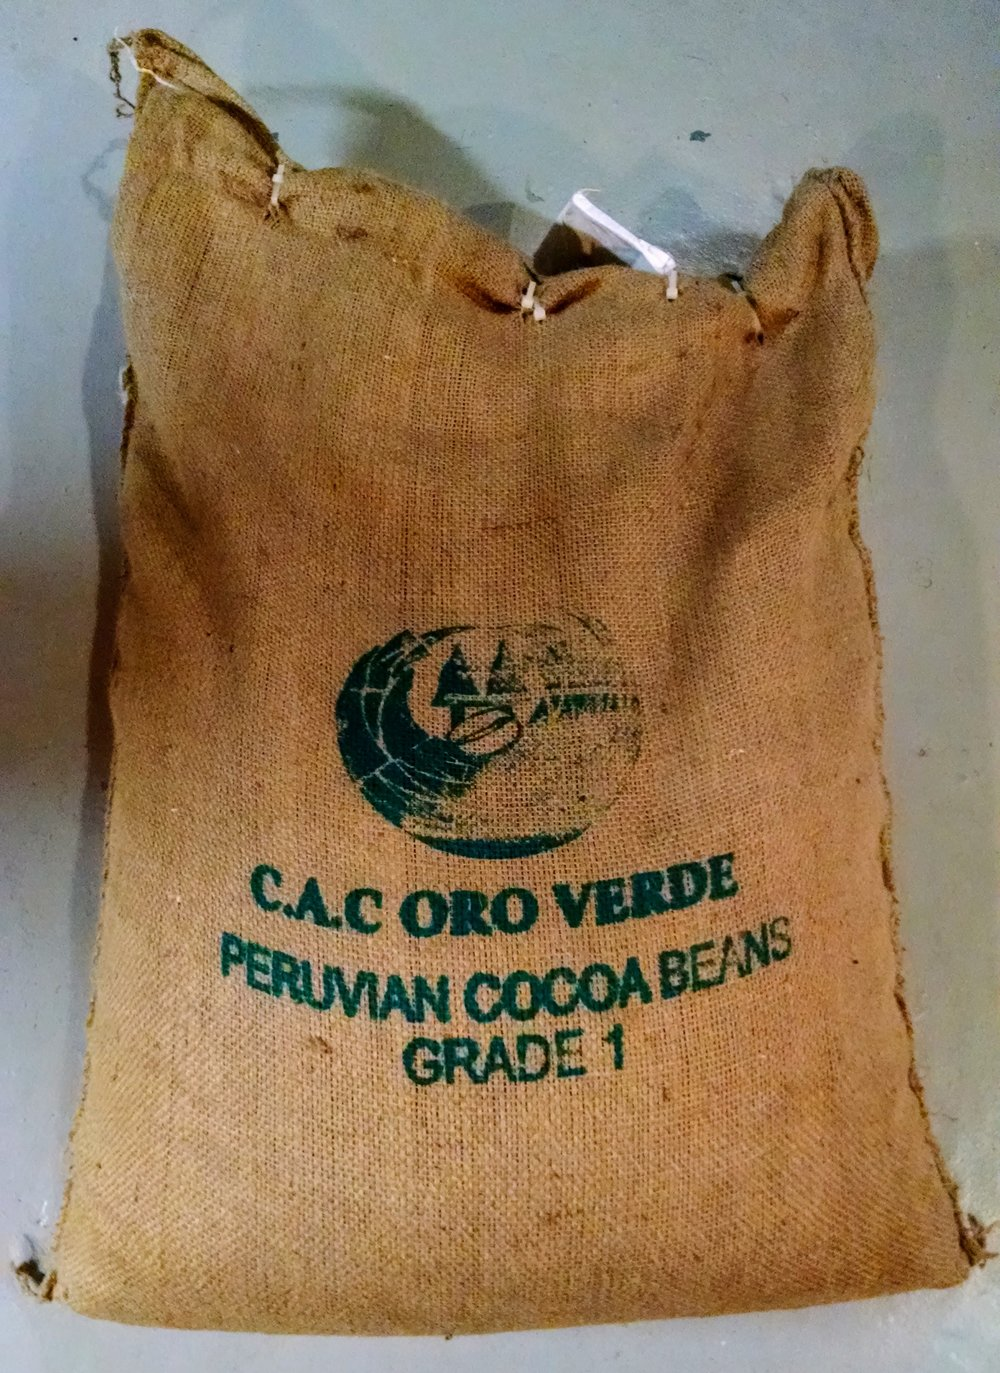 A bag of cocoa from the Oro Verde co-op in Peru, which uses its price premiums to offer technical assistance, medical care, and increased food security to its farmers.